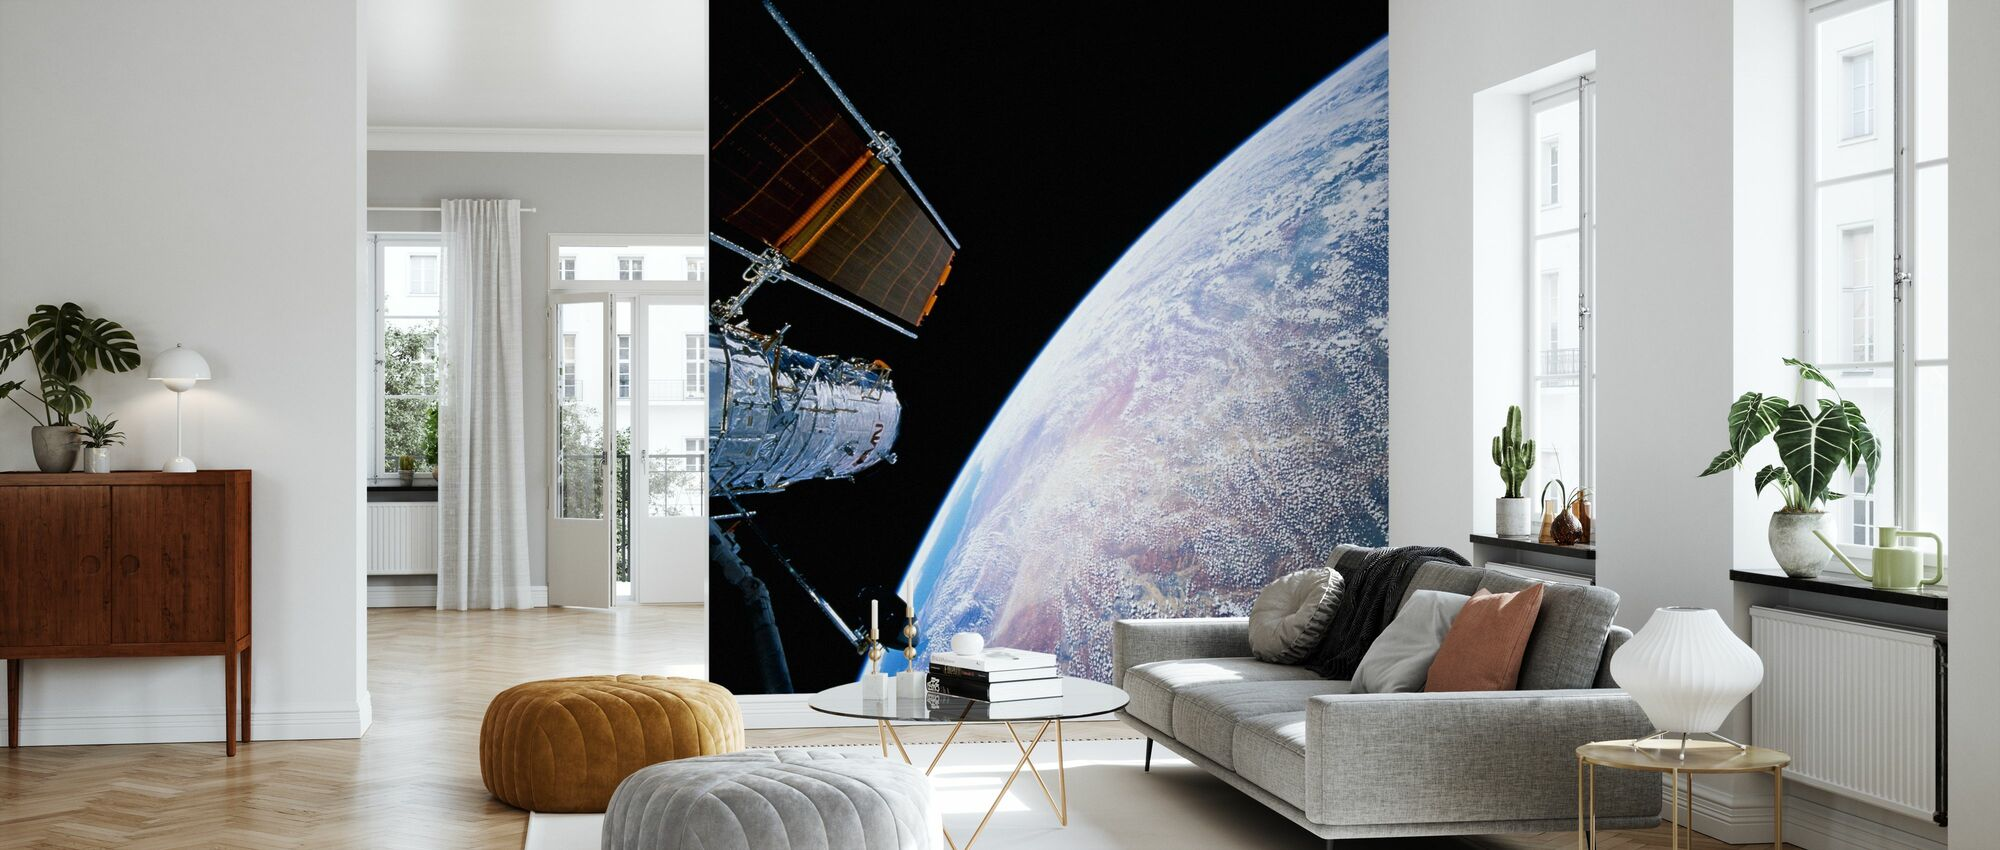 Hubble Space Telescope - Wallpaper - Living Room